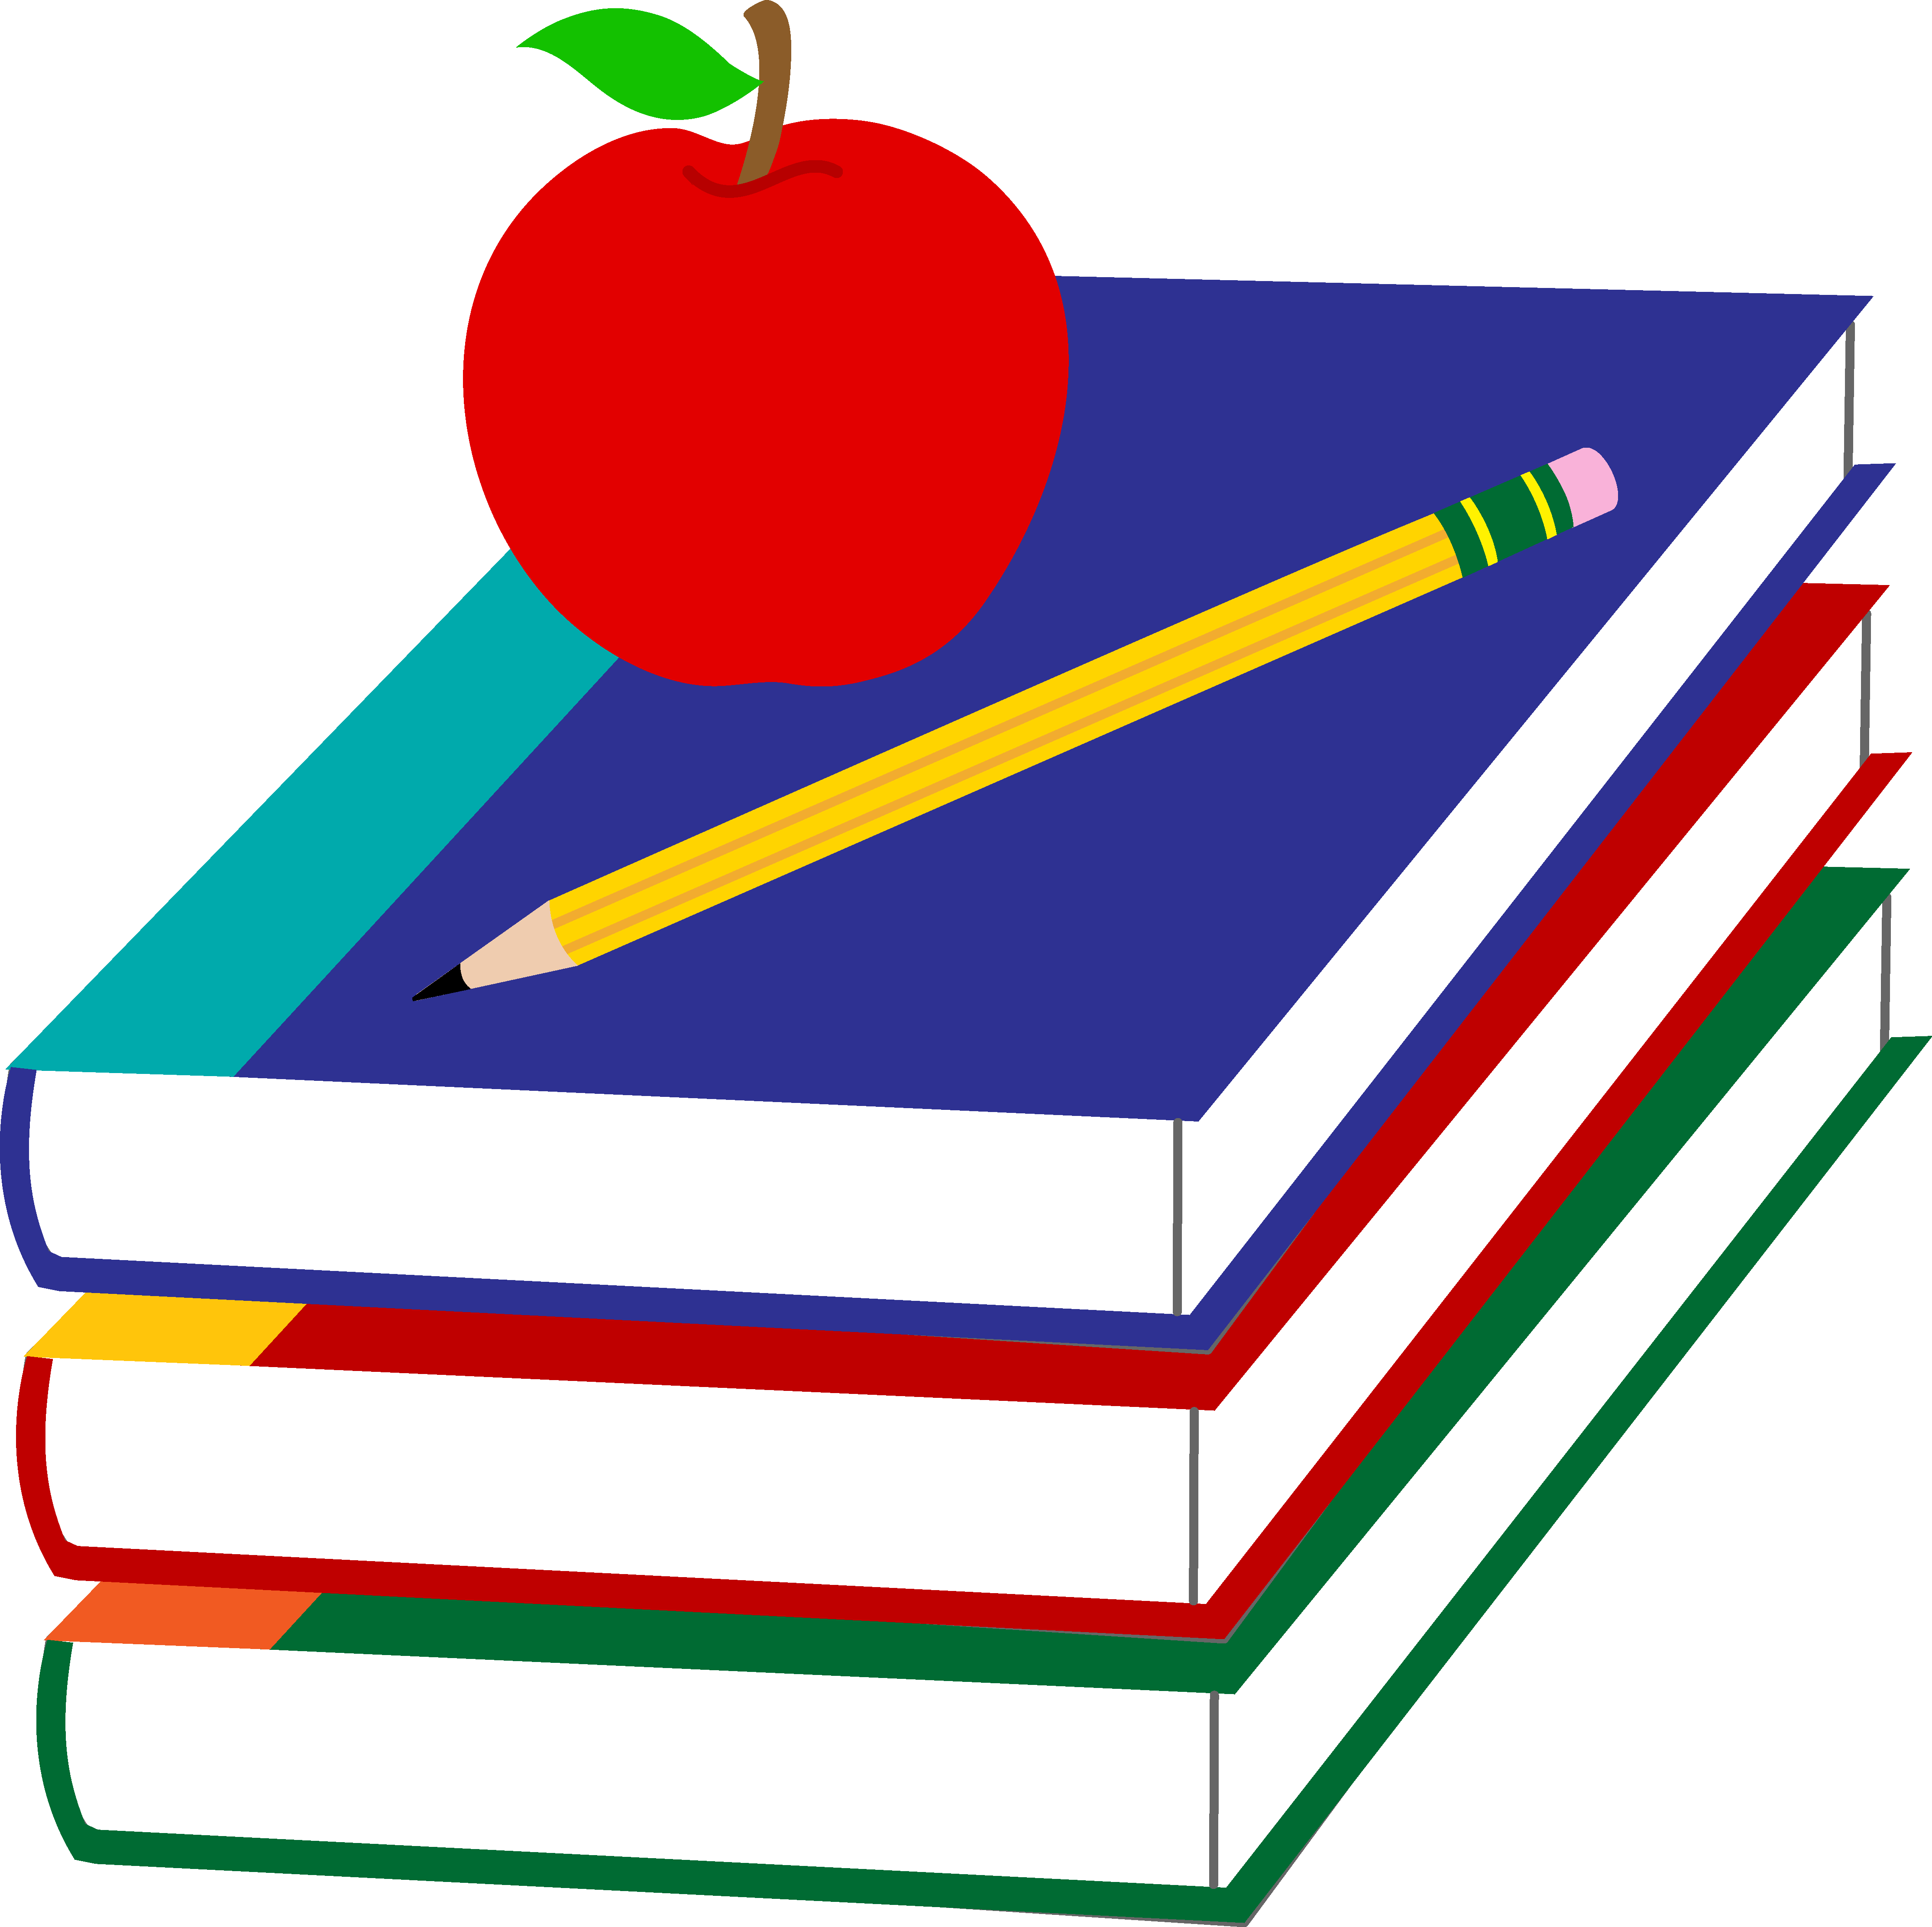 Books and apples png. Collection of pencil